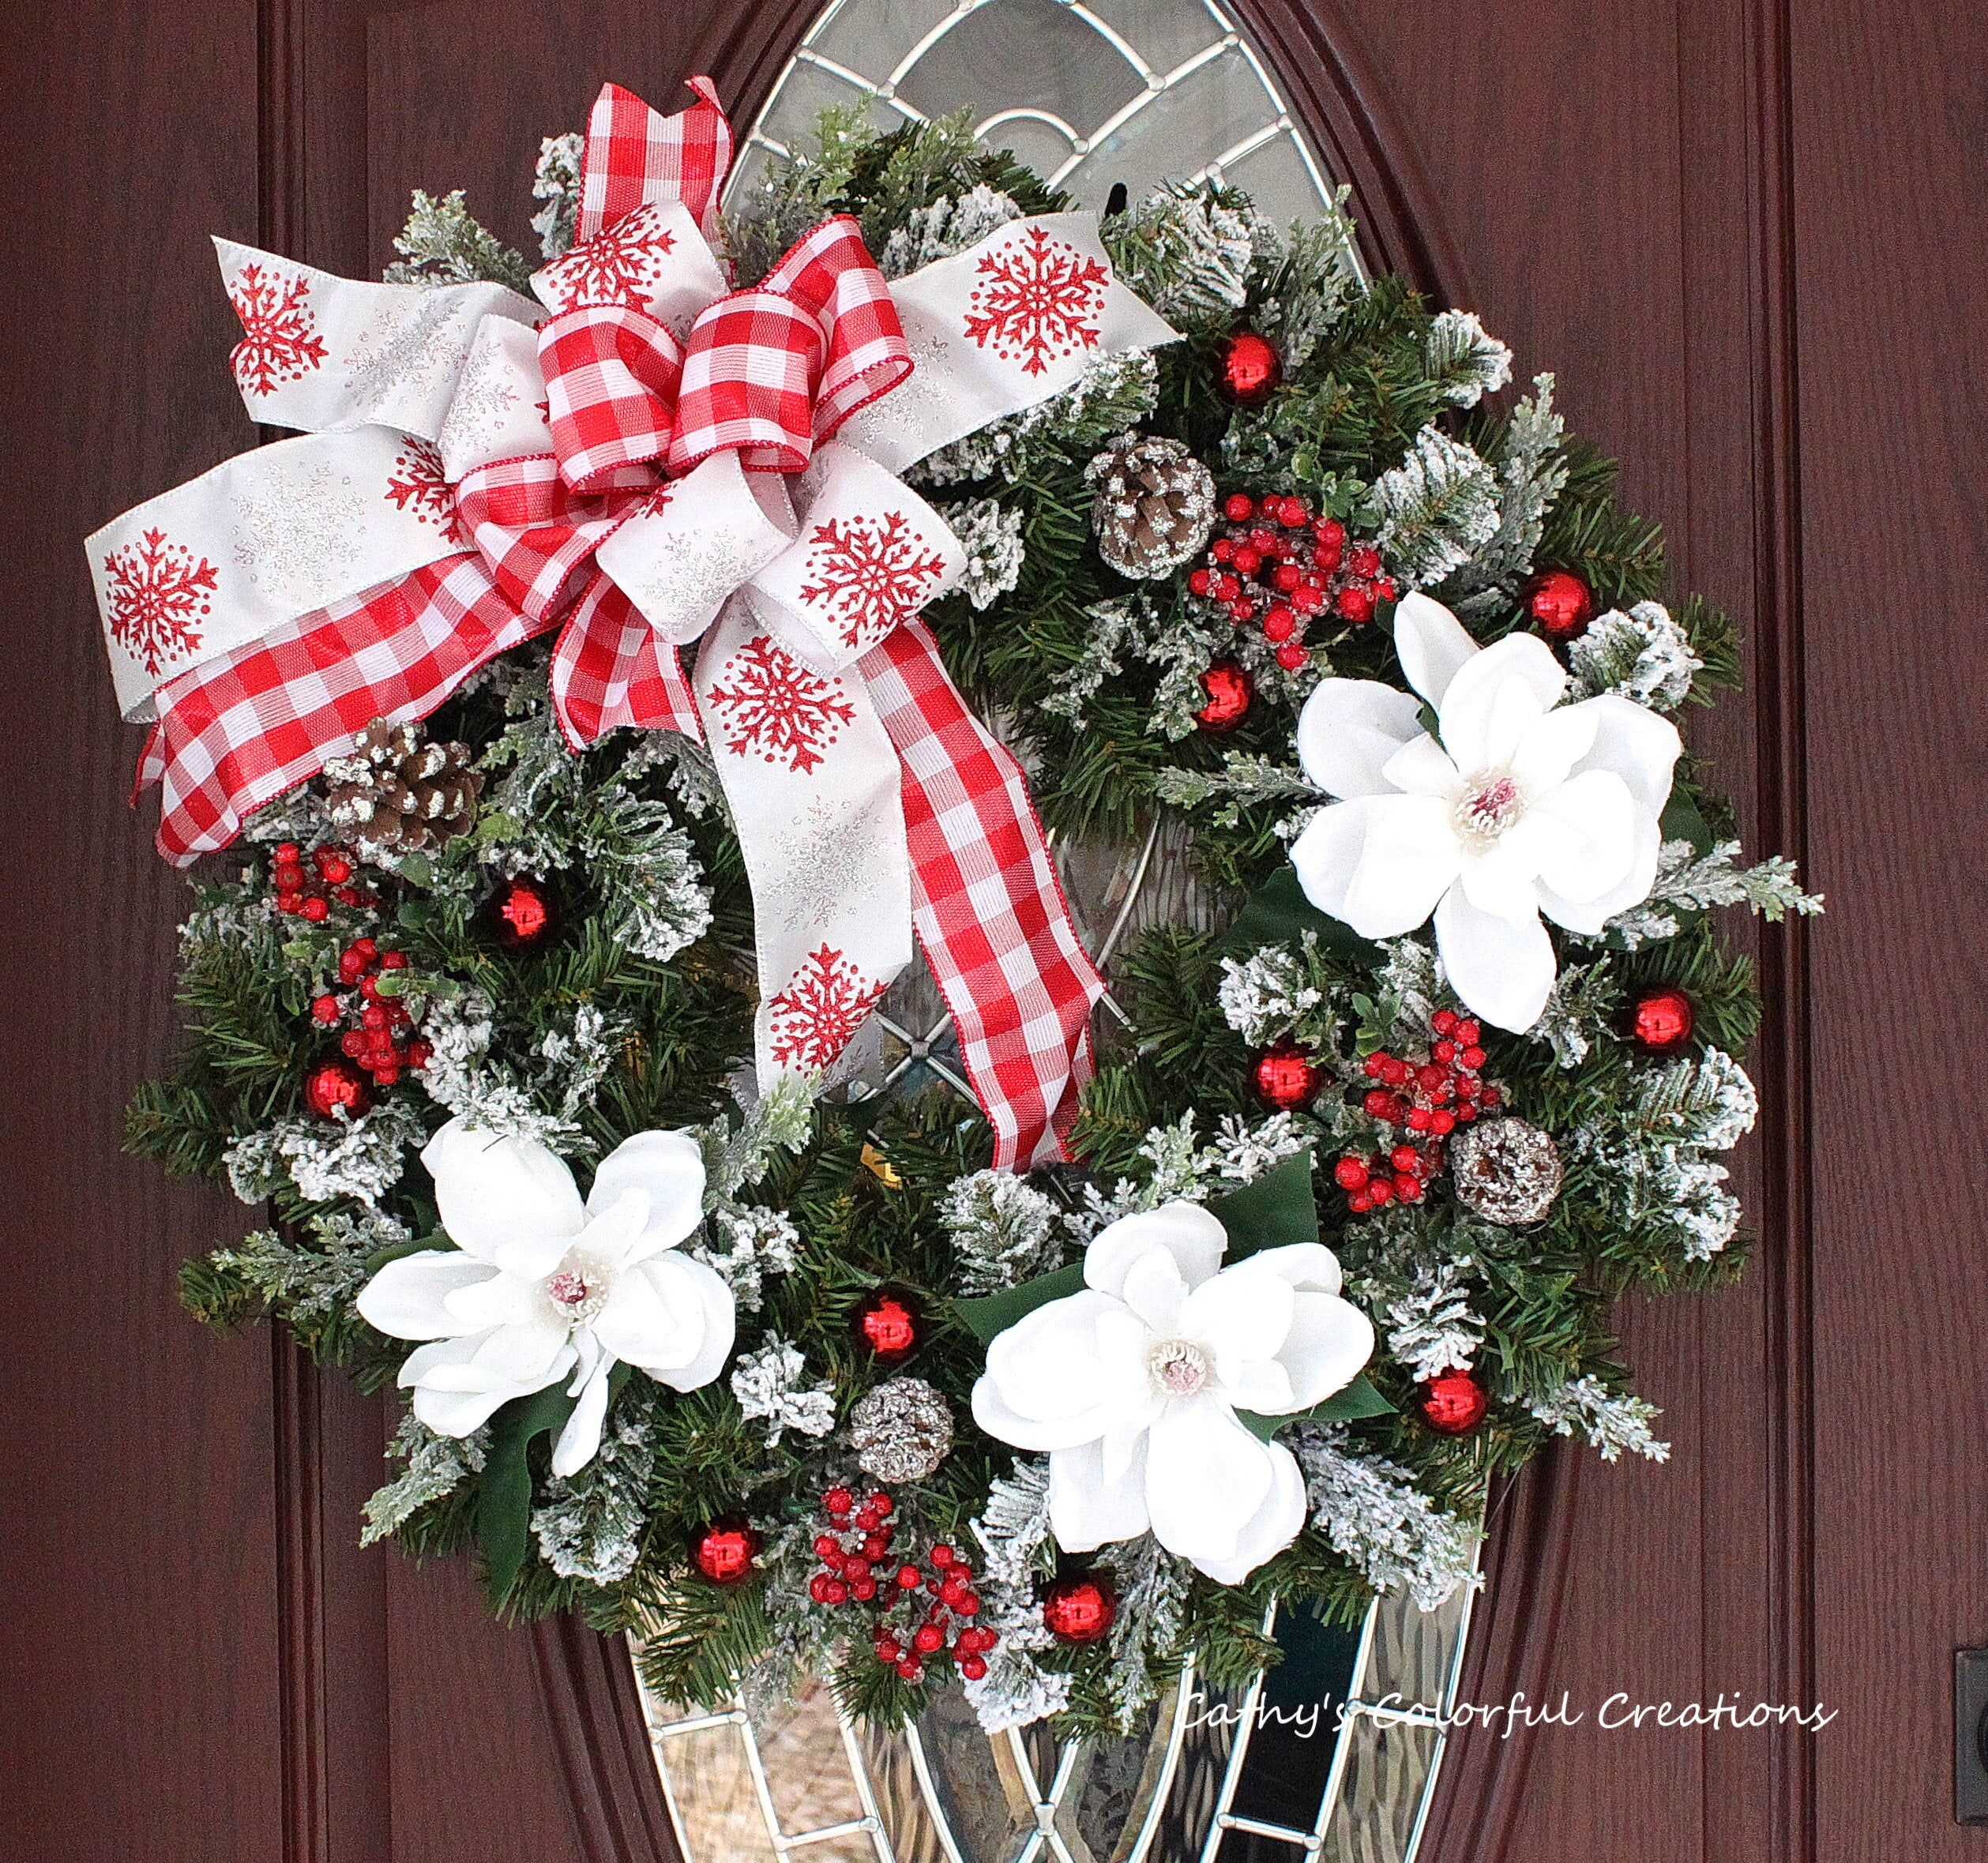 Christmas Wreath, Christmas Decor, Christmas Door Decor, Door Wreath, Front Door Wreath, Holiday Wreath, Fireplace Wreath, Magnolia Wreath